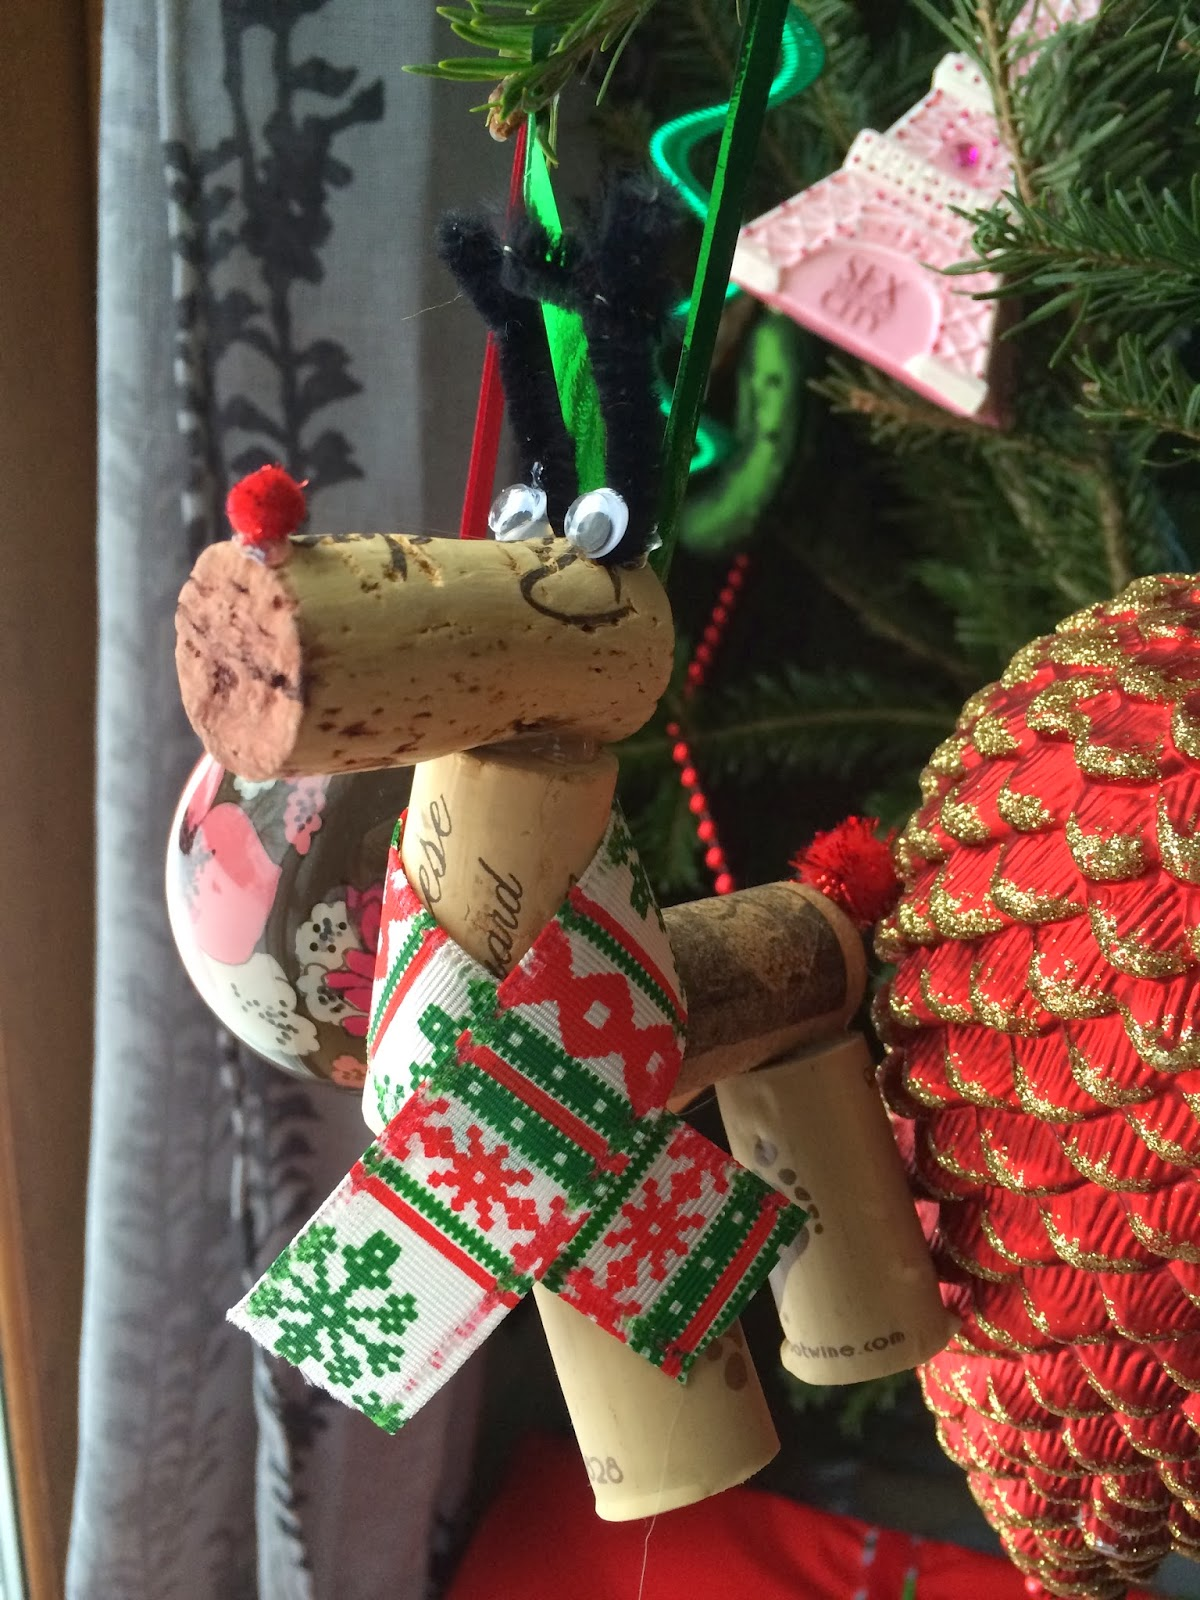 DIY Wine Cork Reindeer Ornament